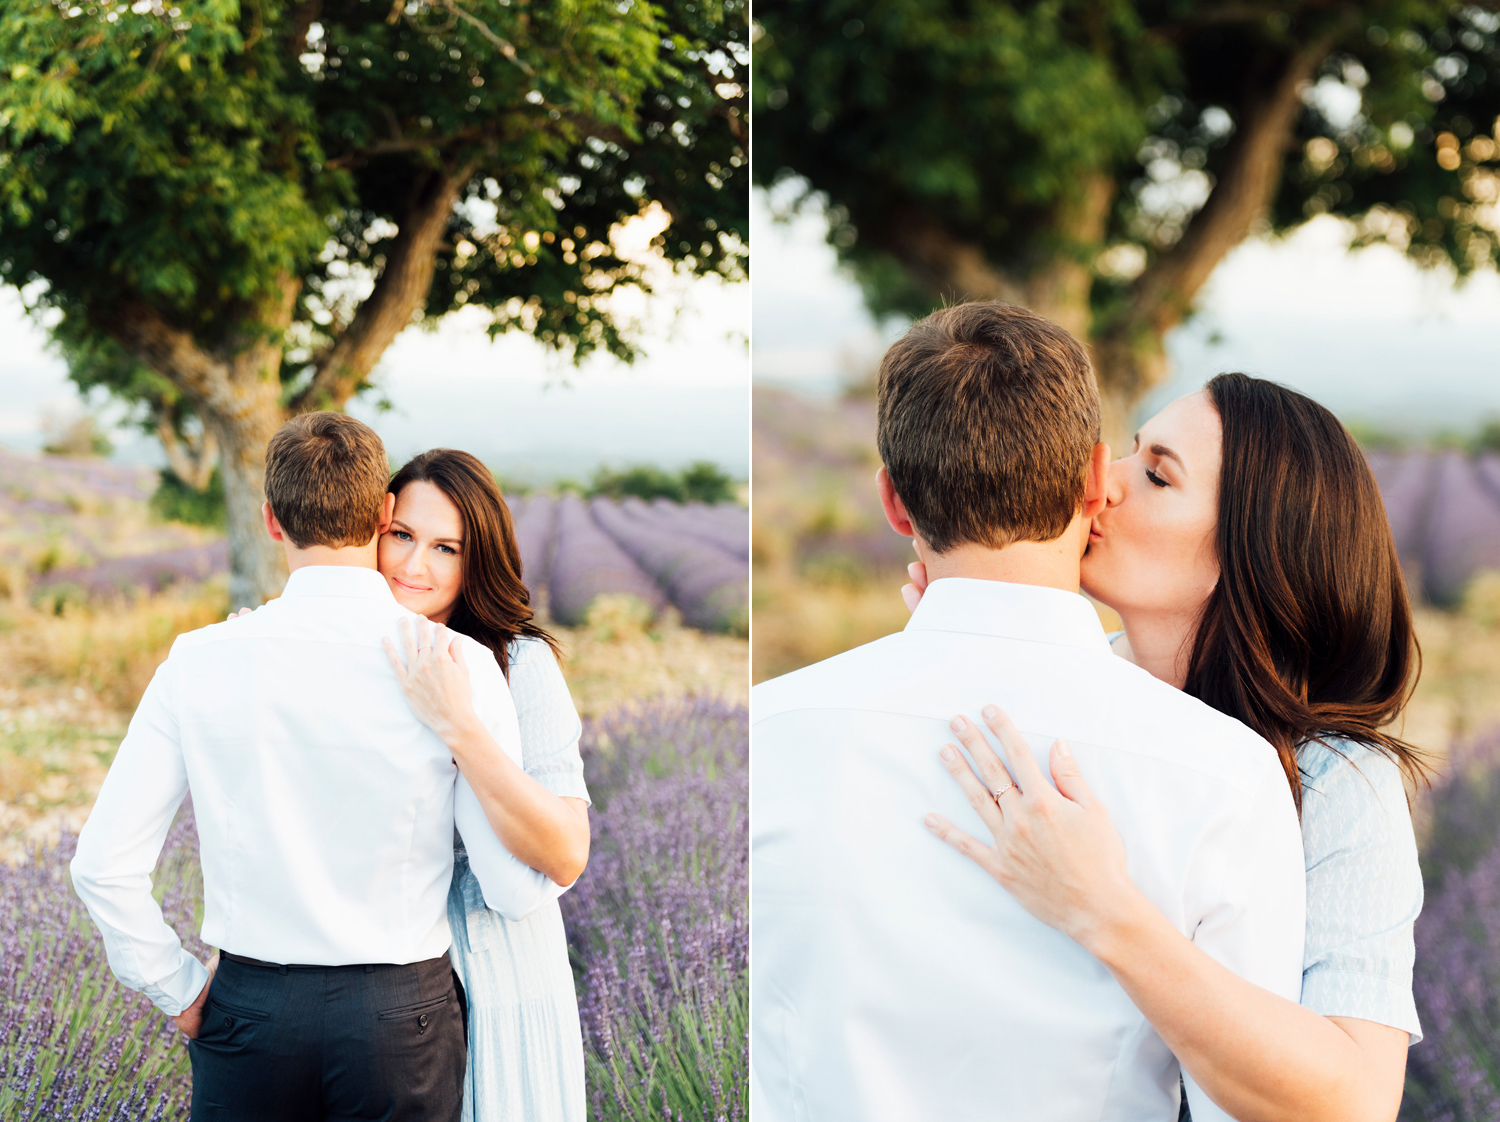 005-katie-mitchell-provence-wedding-portrait-engagement-photographer-south-of-france.jpg